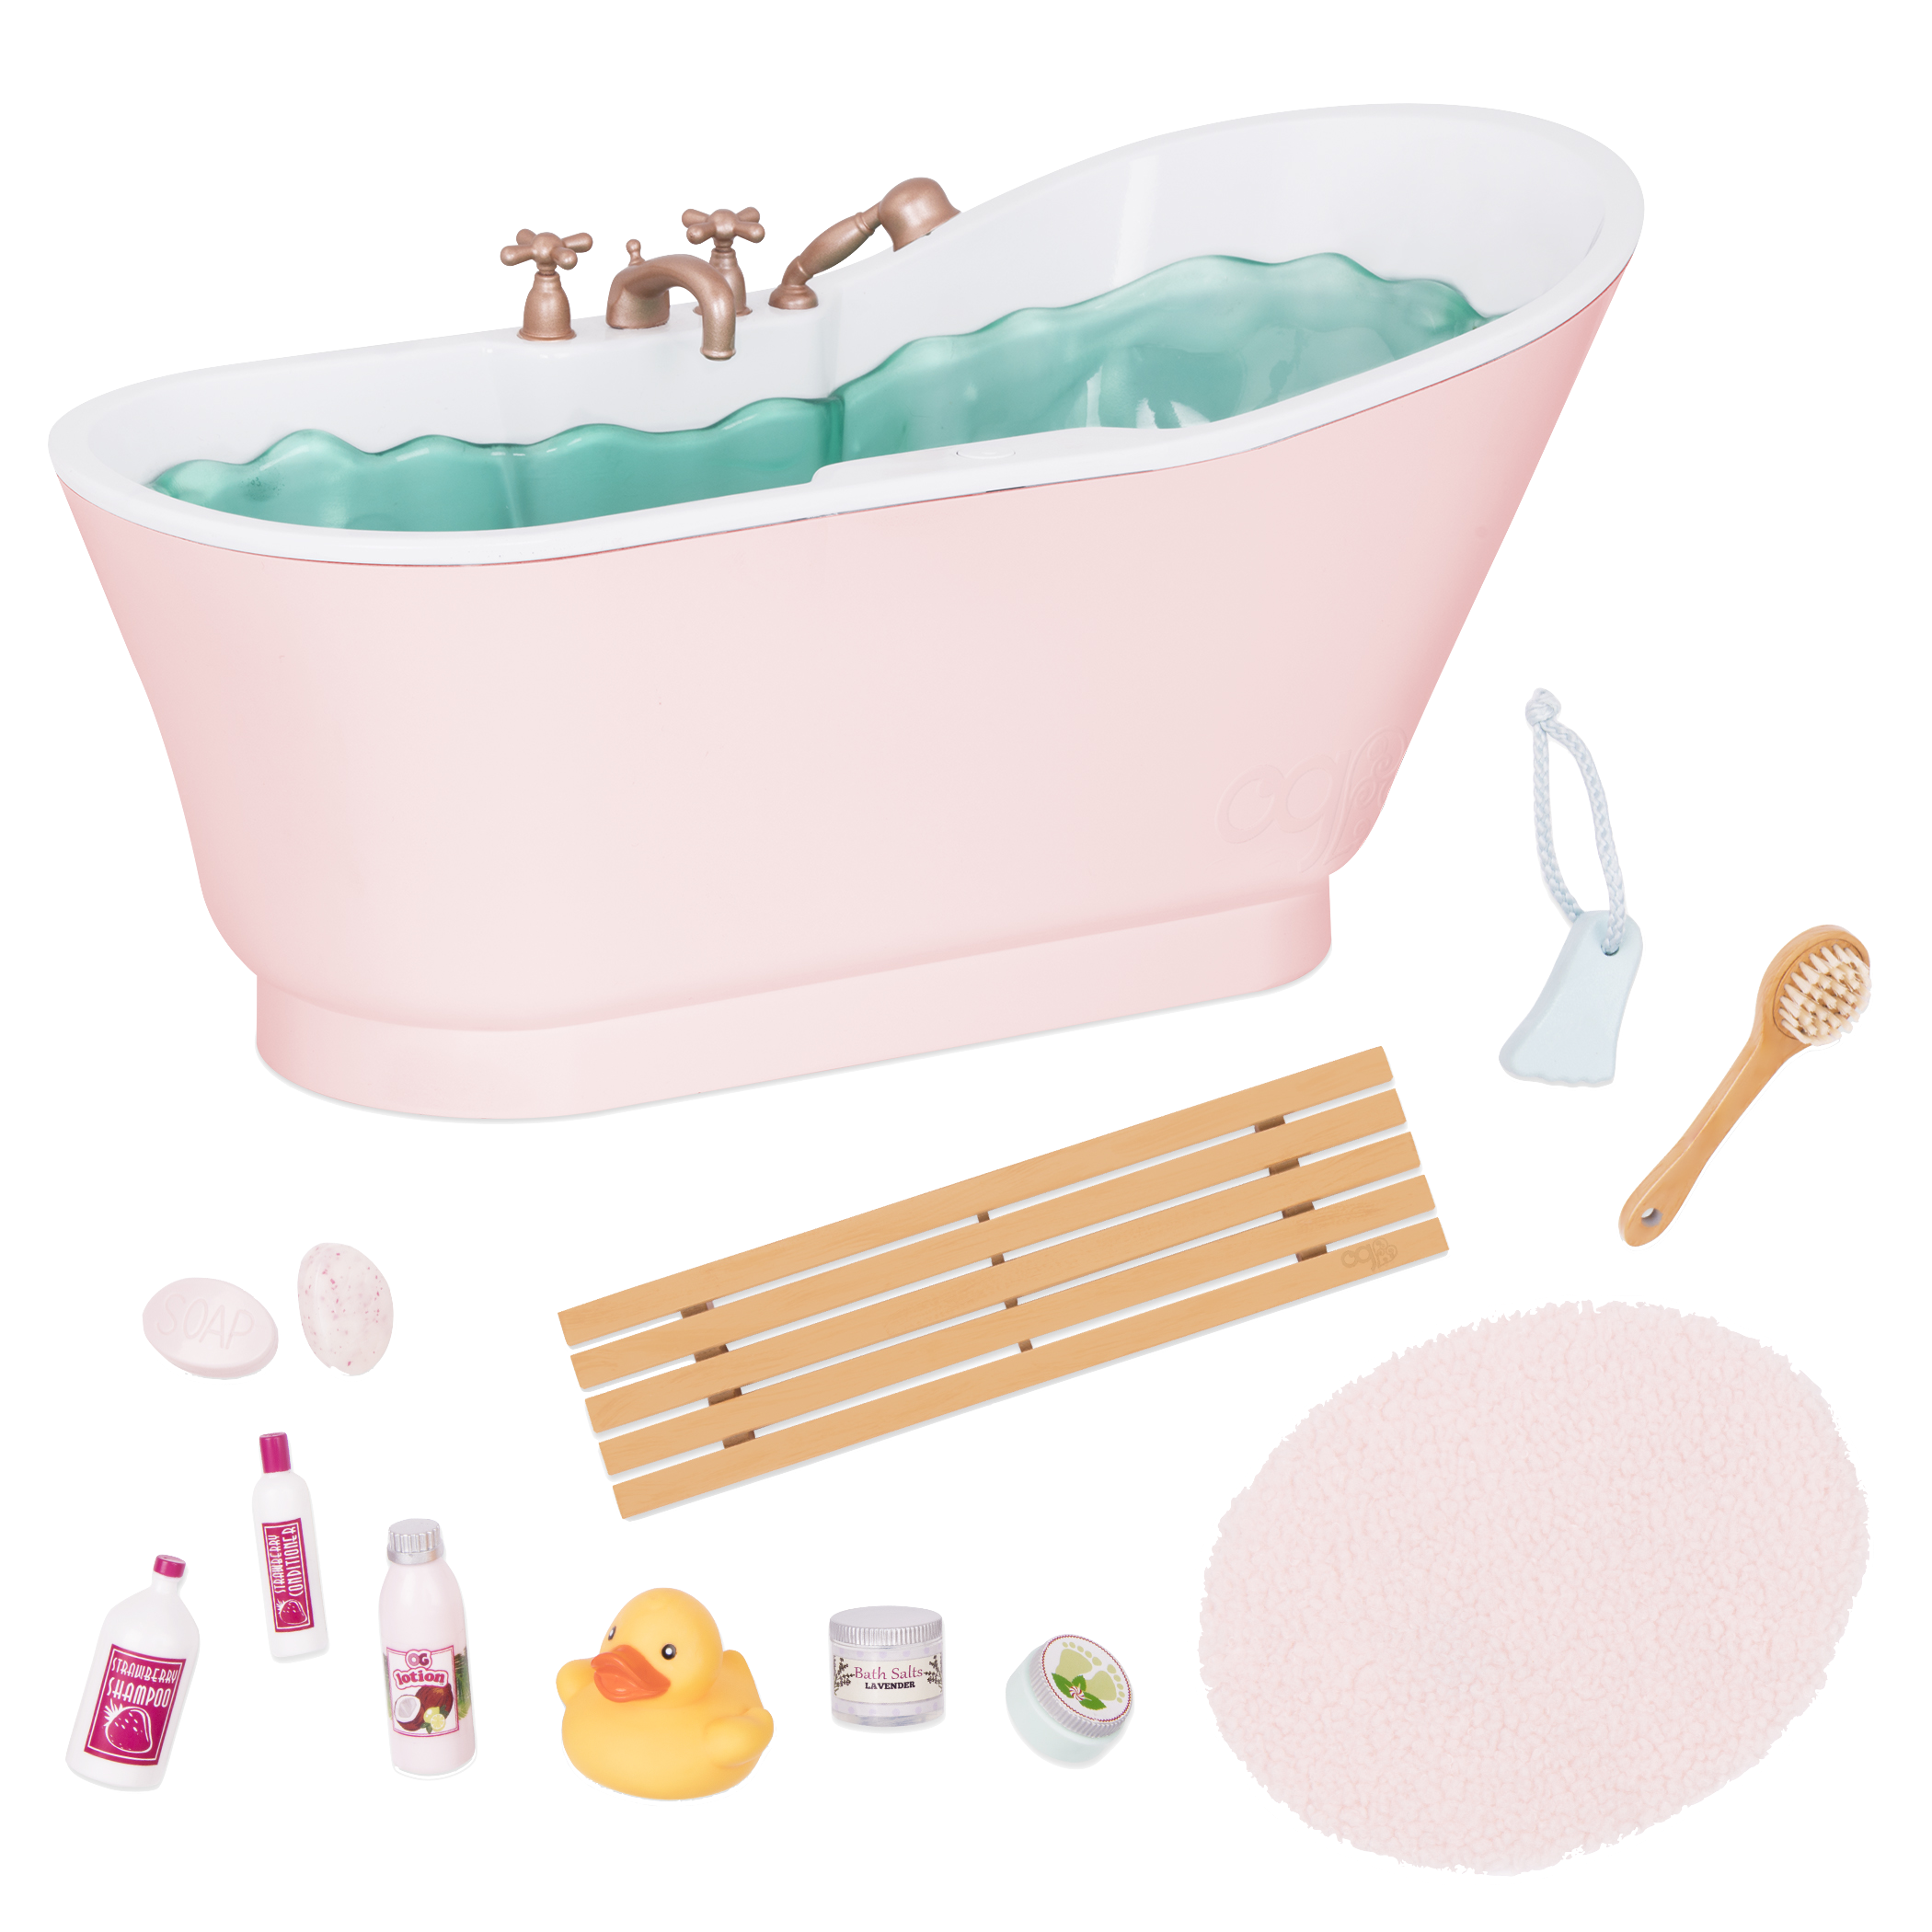 Bath and Bubbles set all items